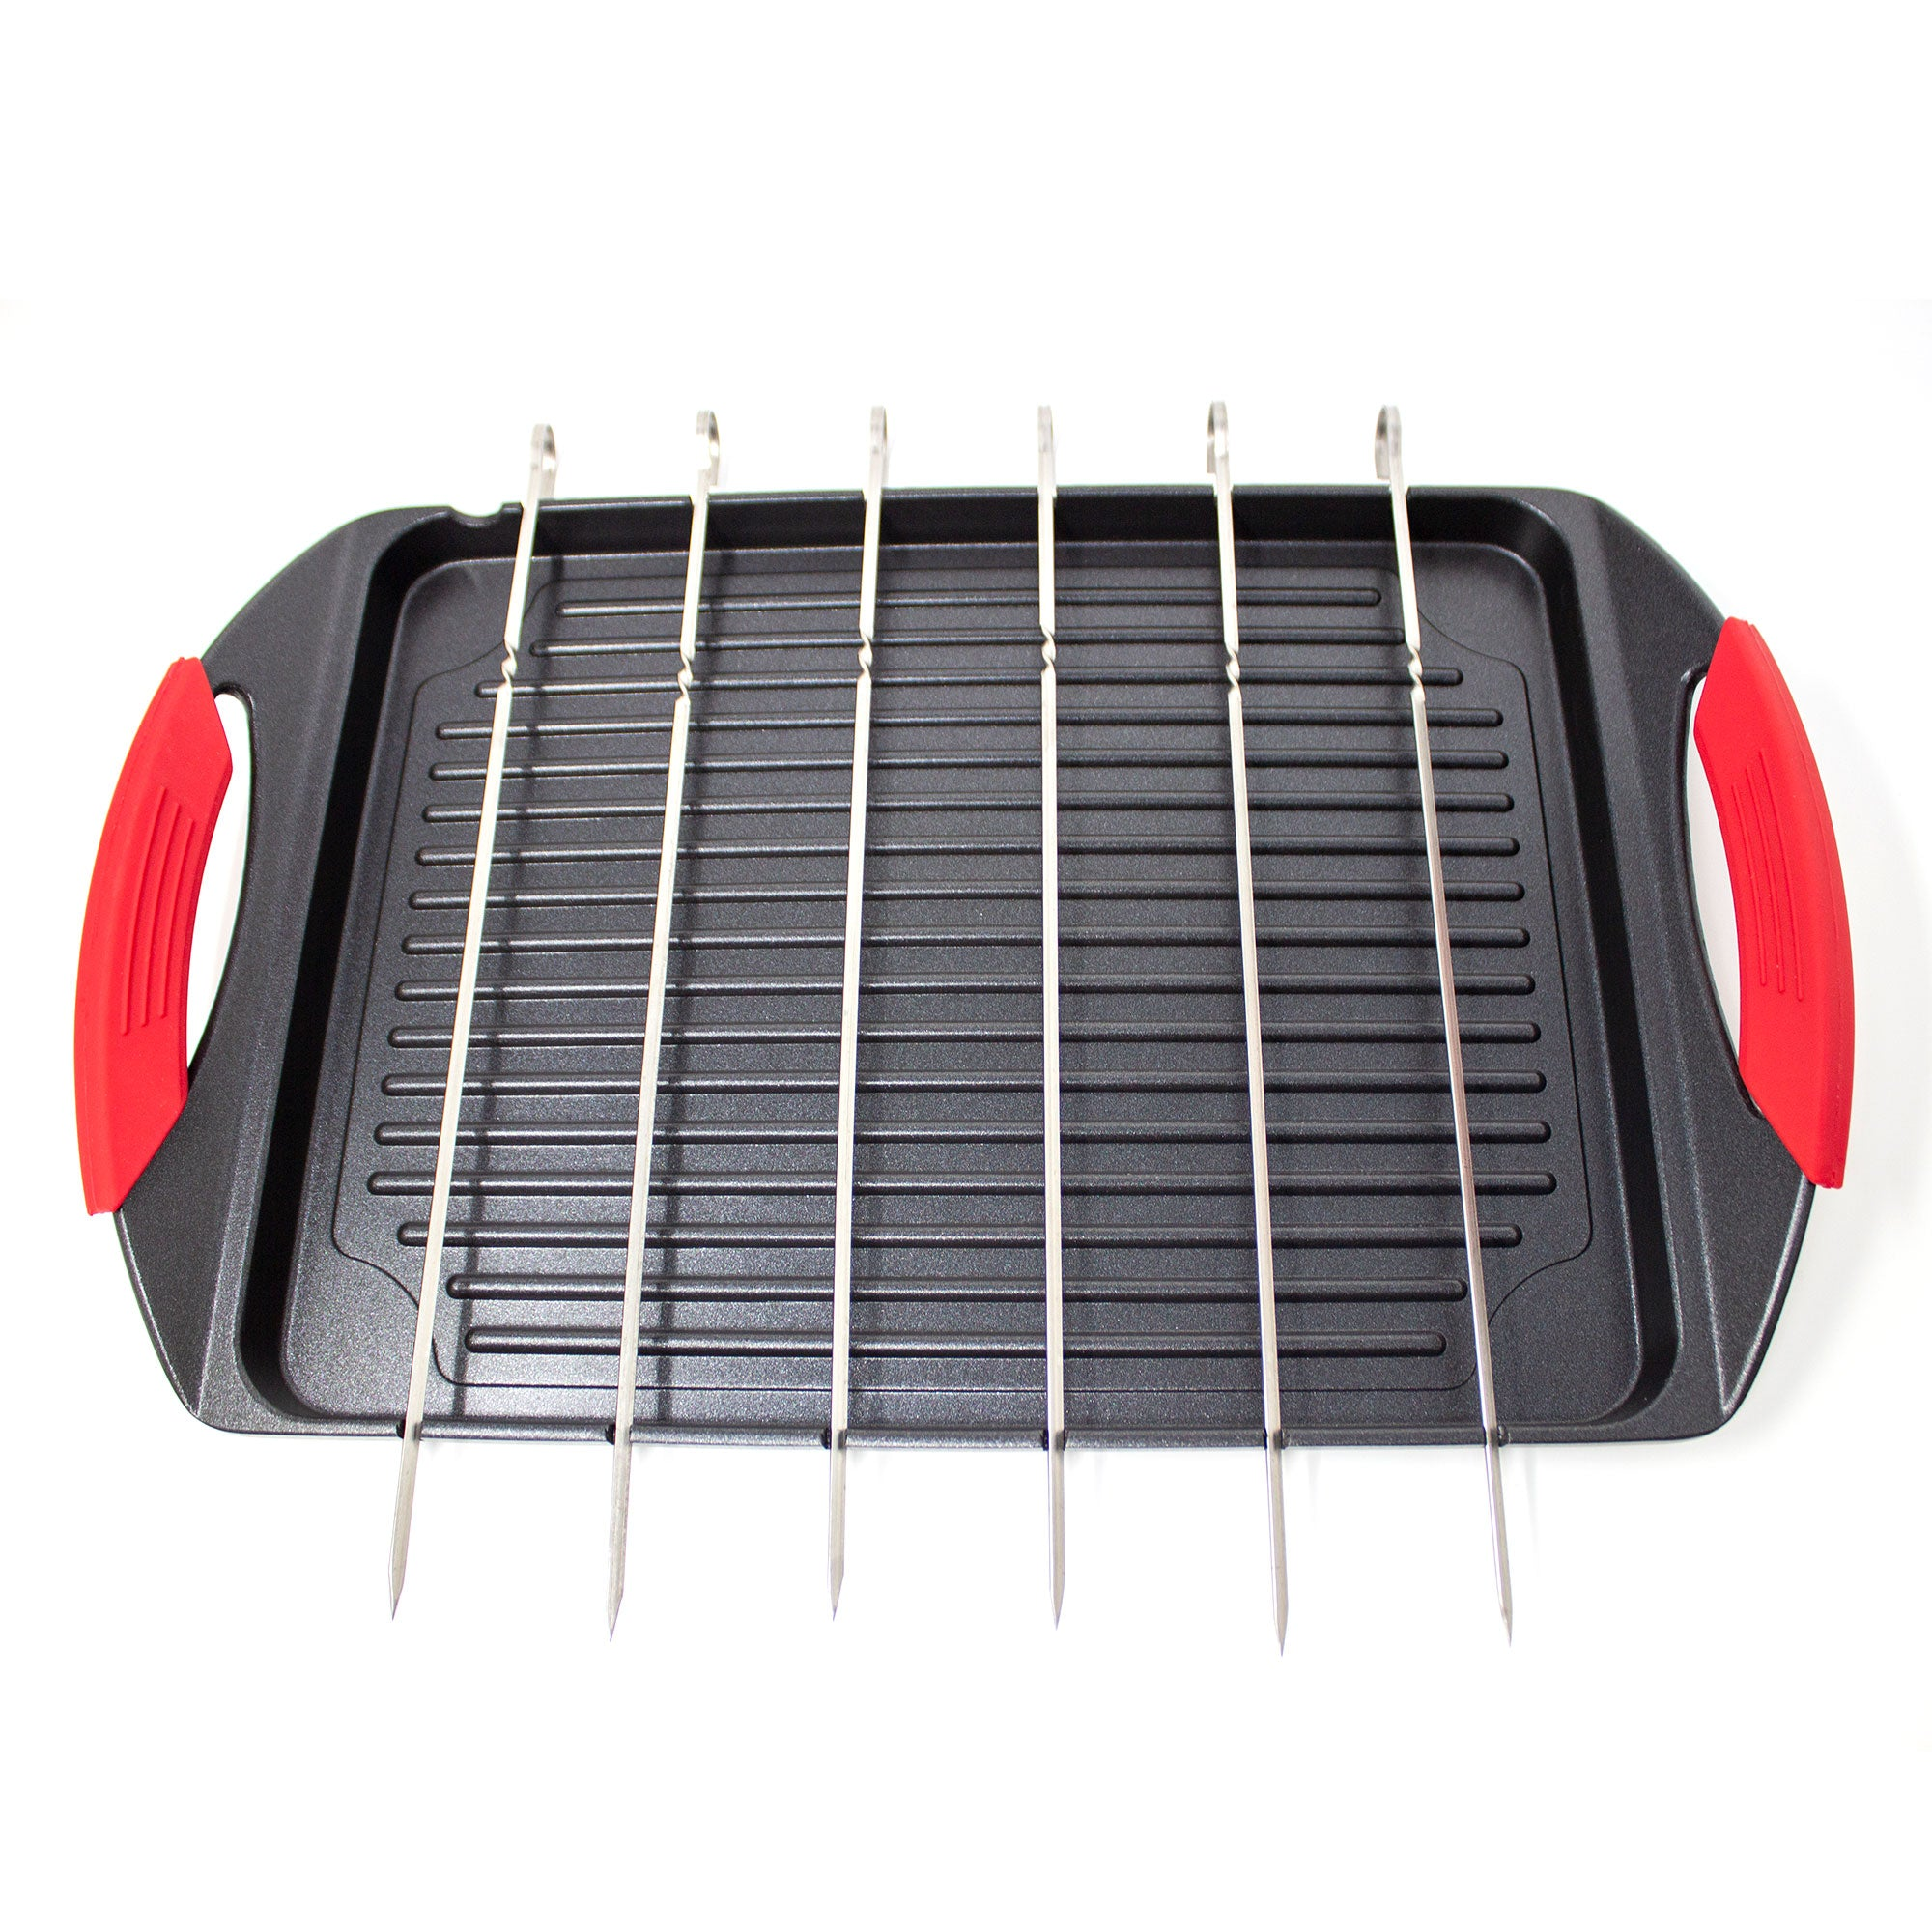 "The ""Griddle Me This"" Cast Aluminium Griddle Plate & 6 Stainless Steel Skewers"